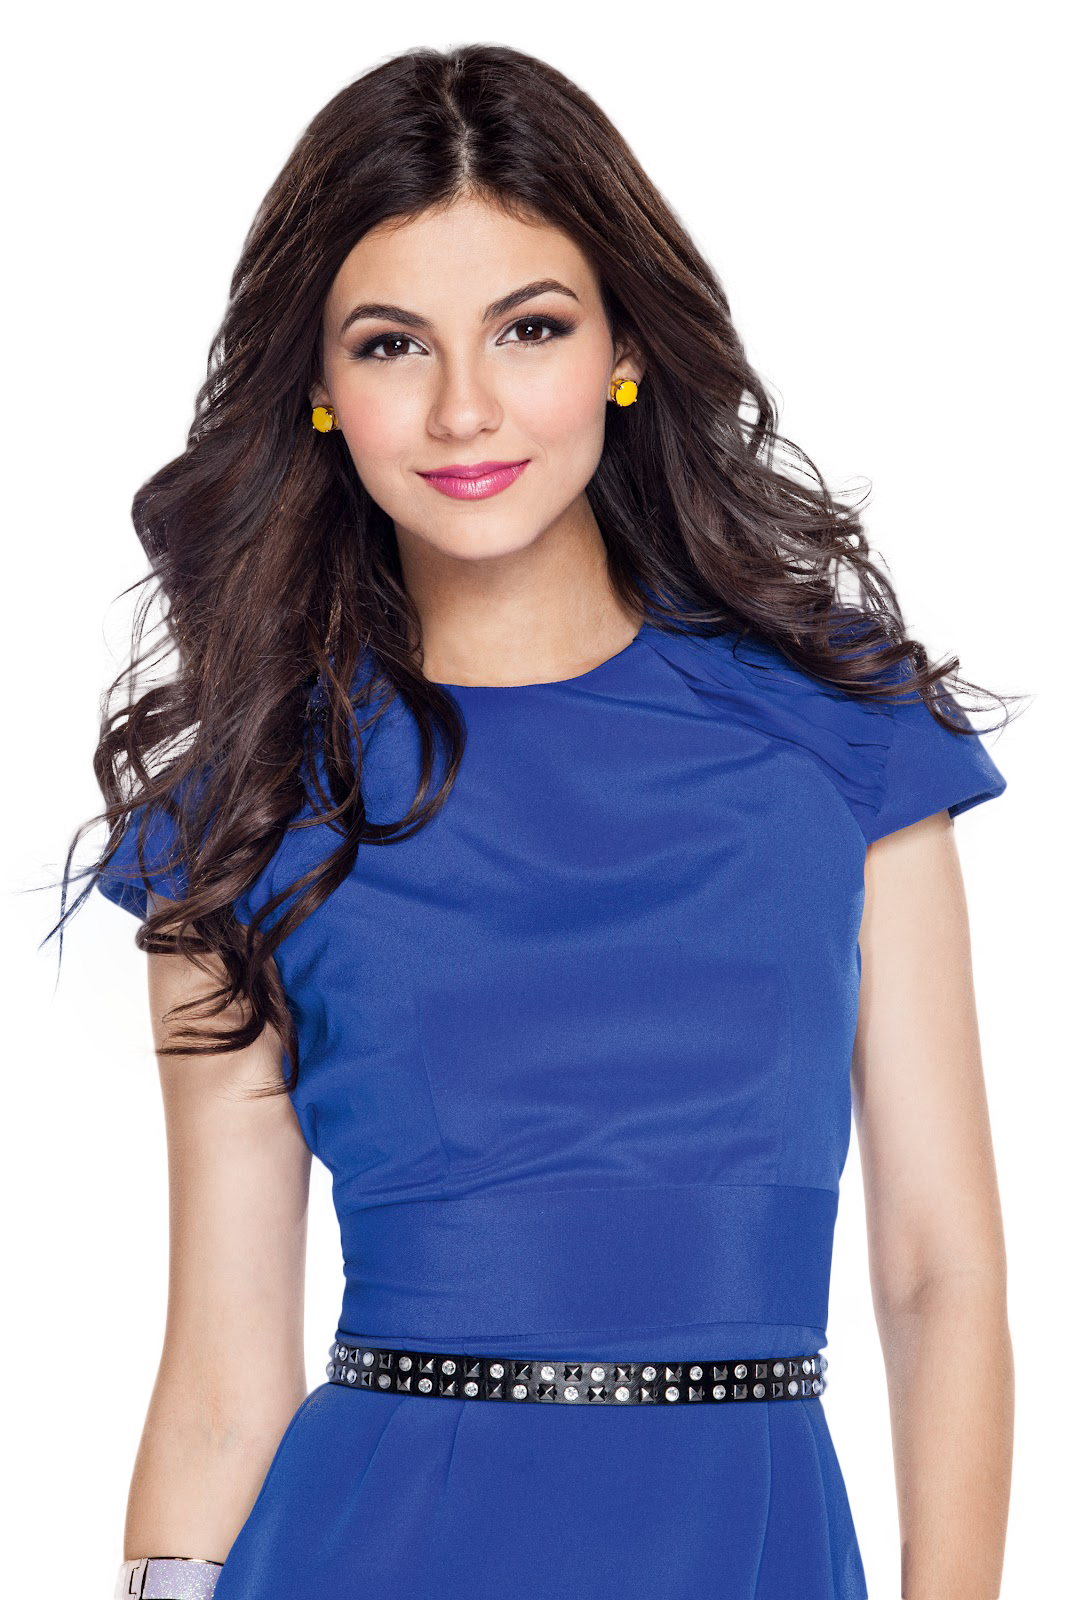 Victoria Justice Free PNG Image.